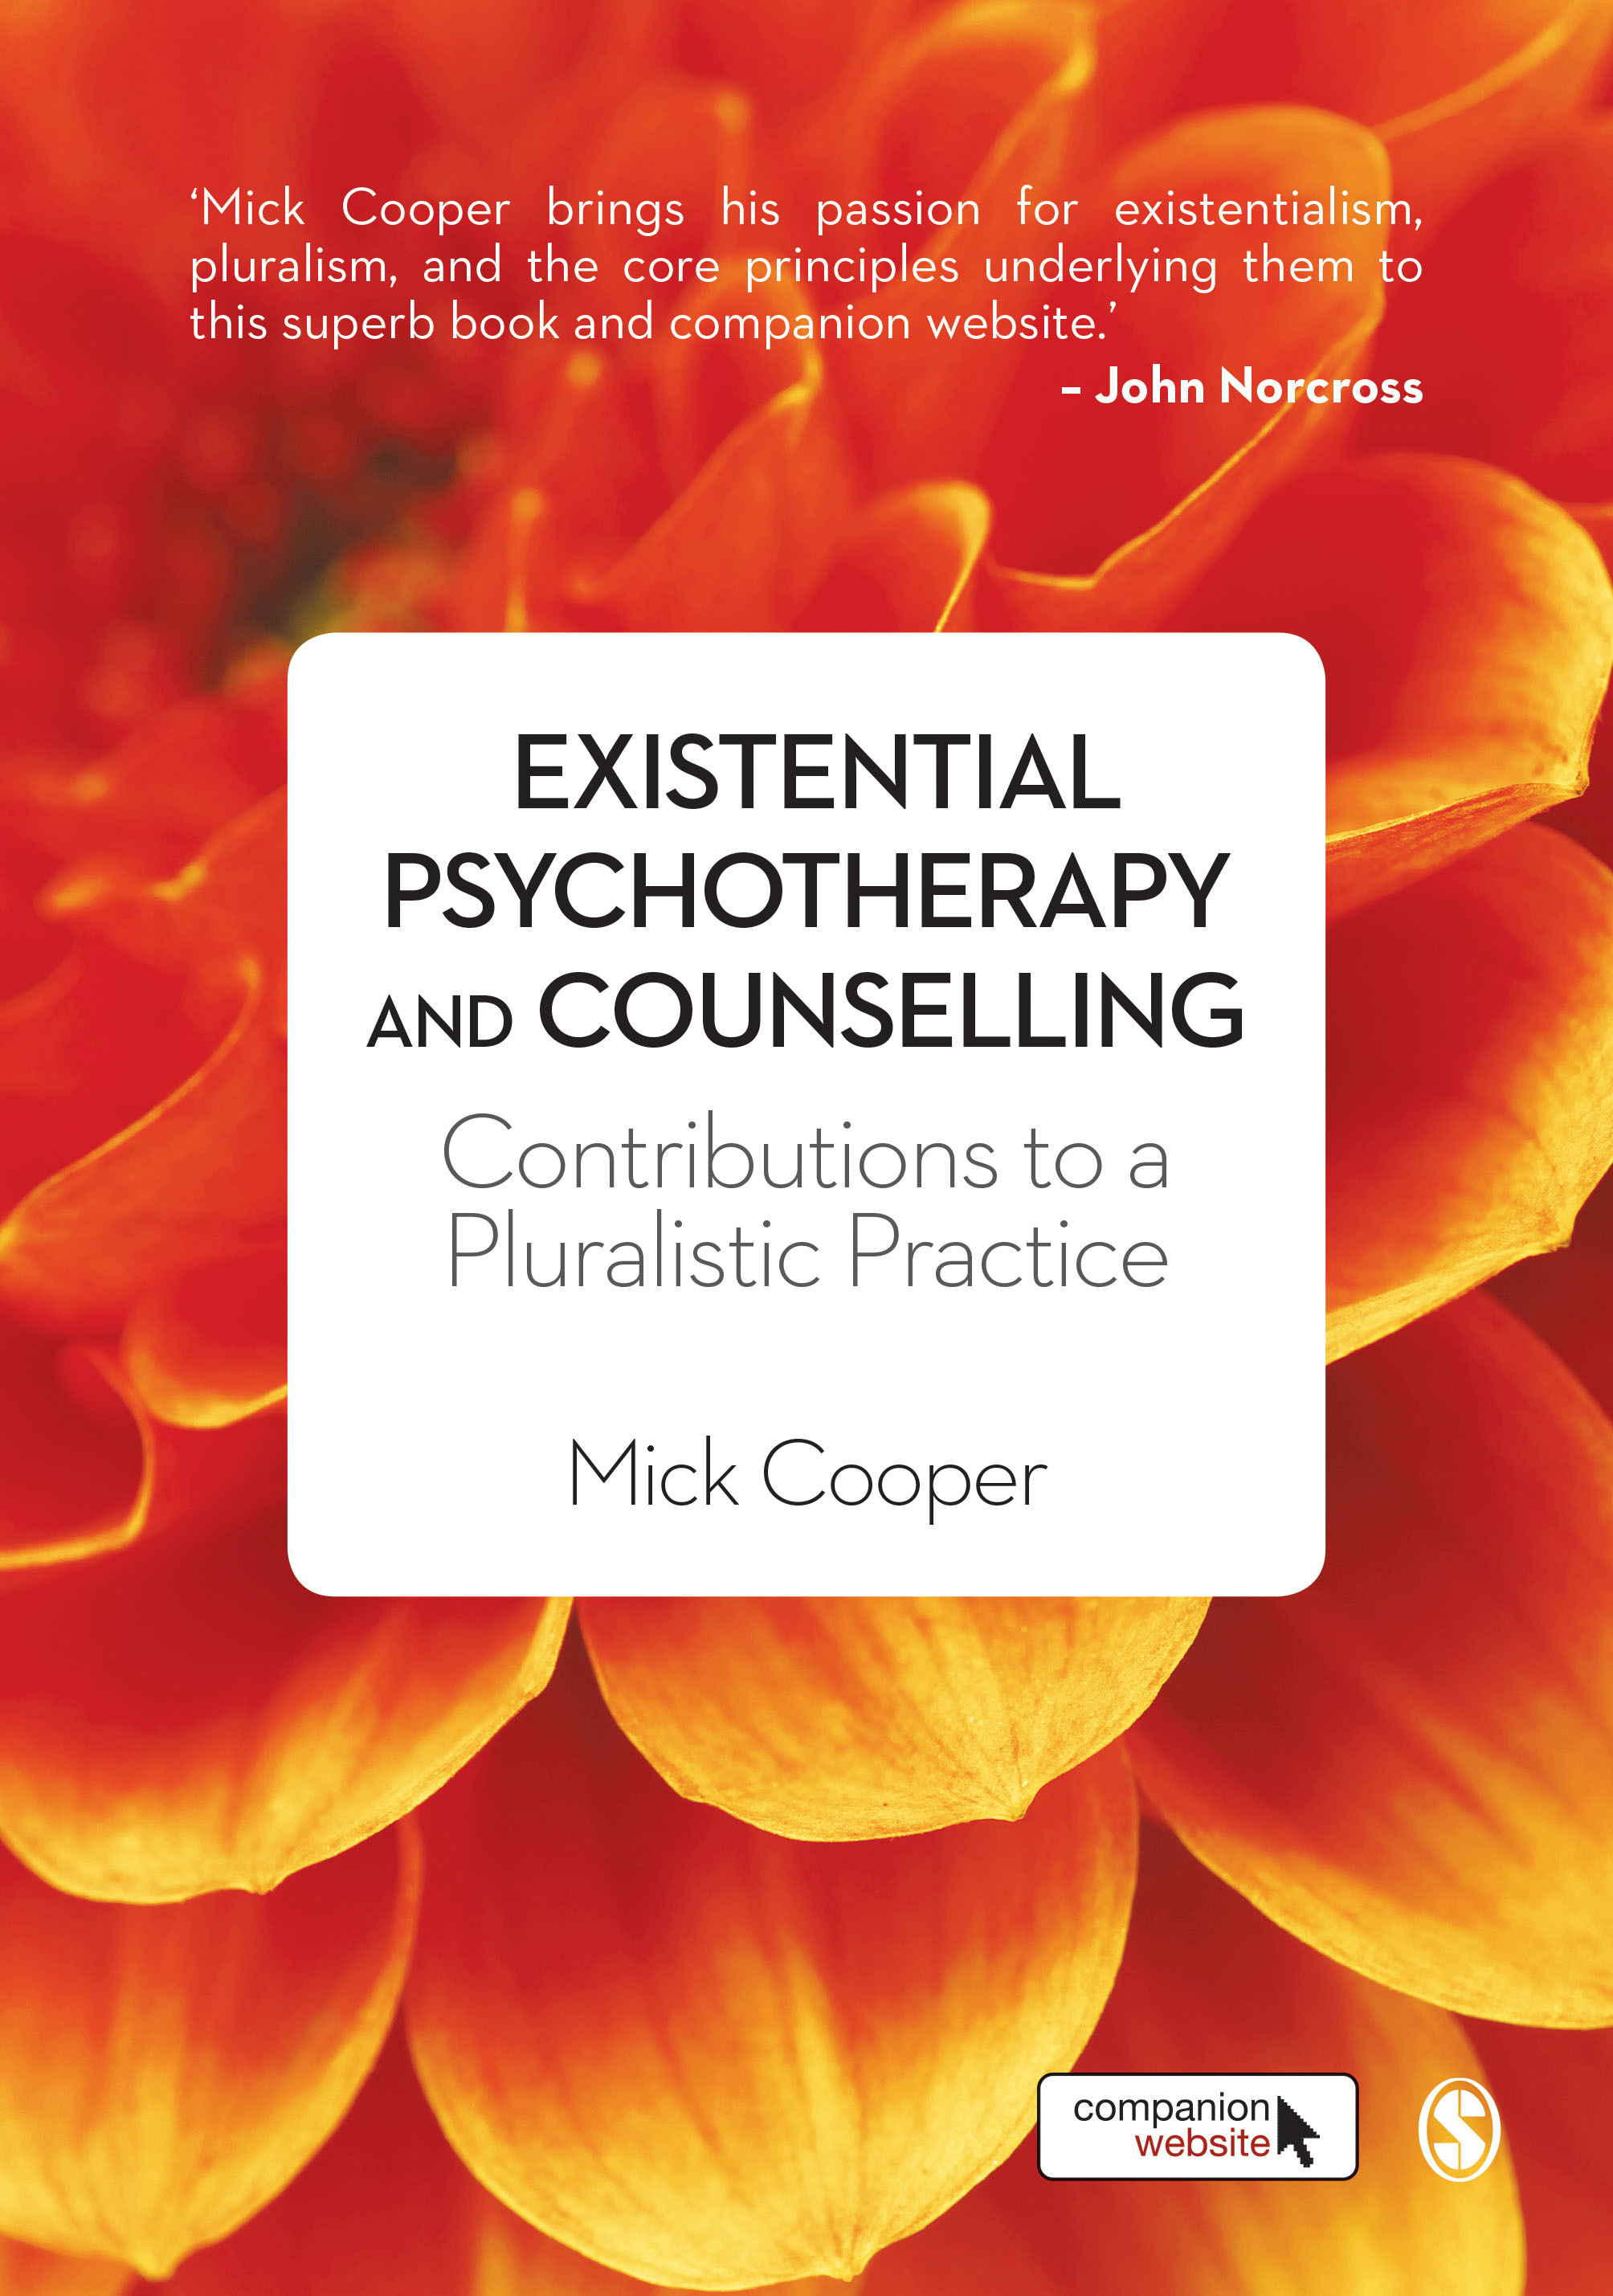 Existential psychotherapy and counselling book cover